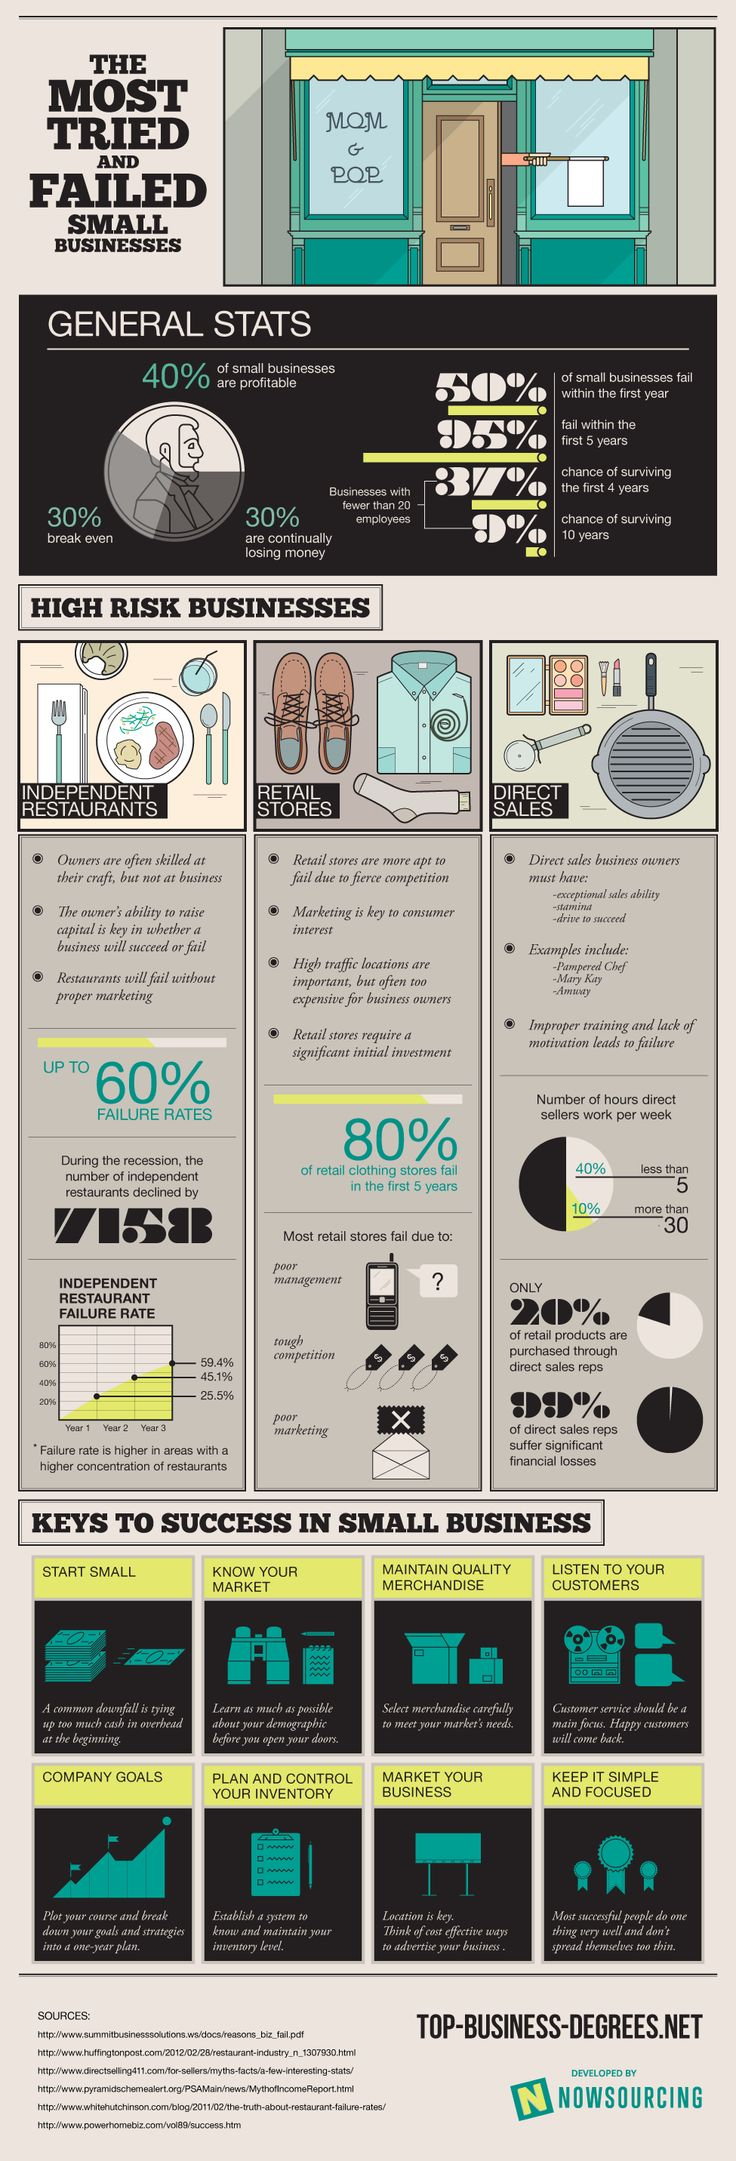 The most tried and failed small business #infographic